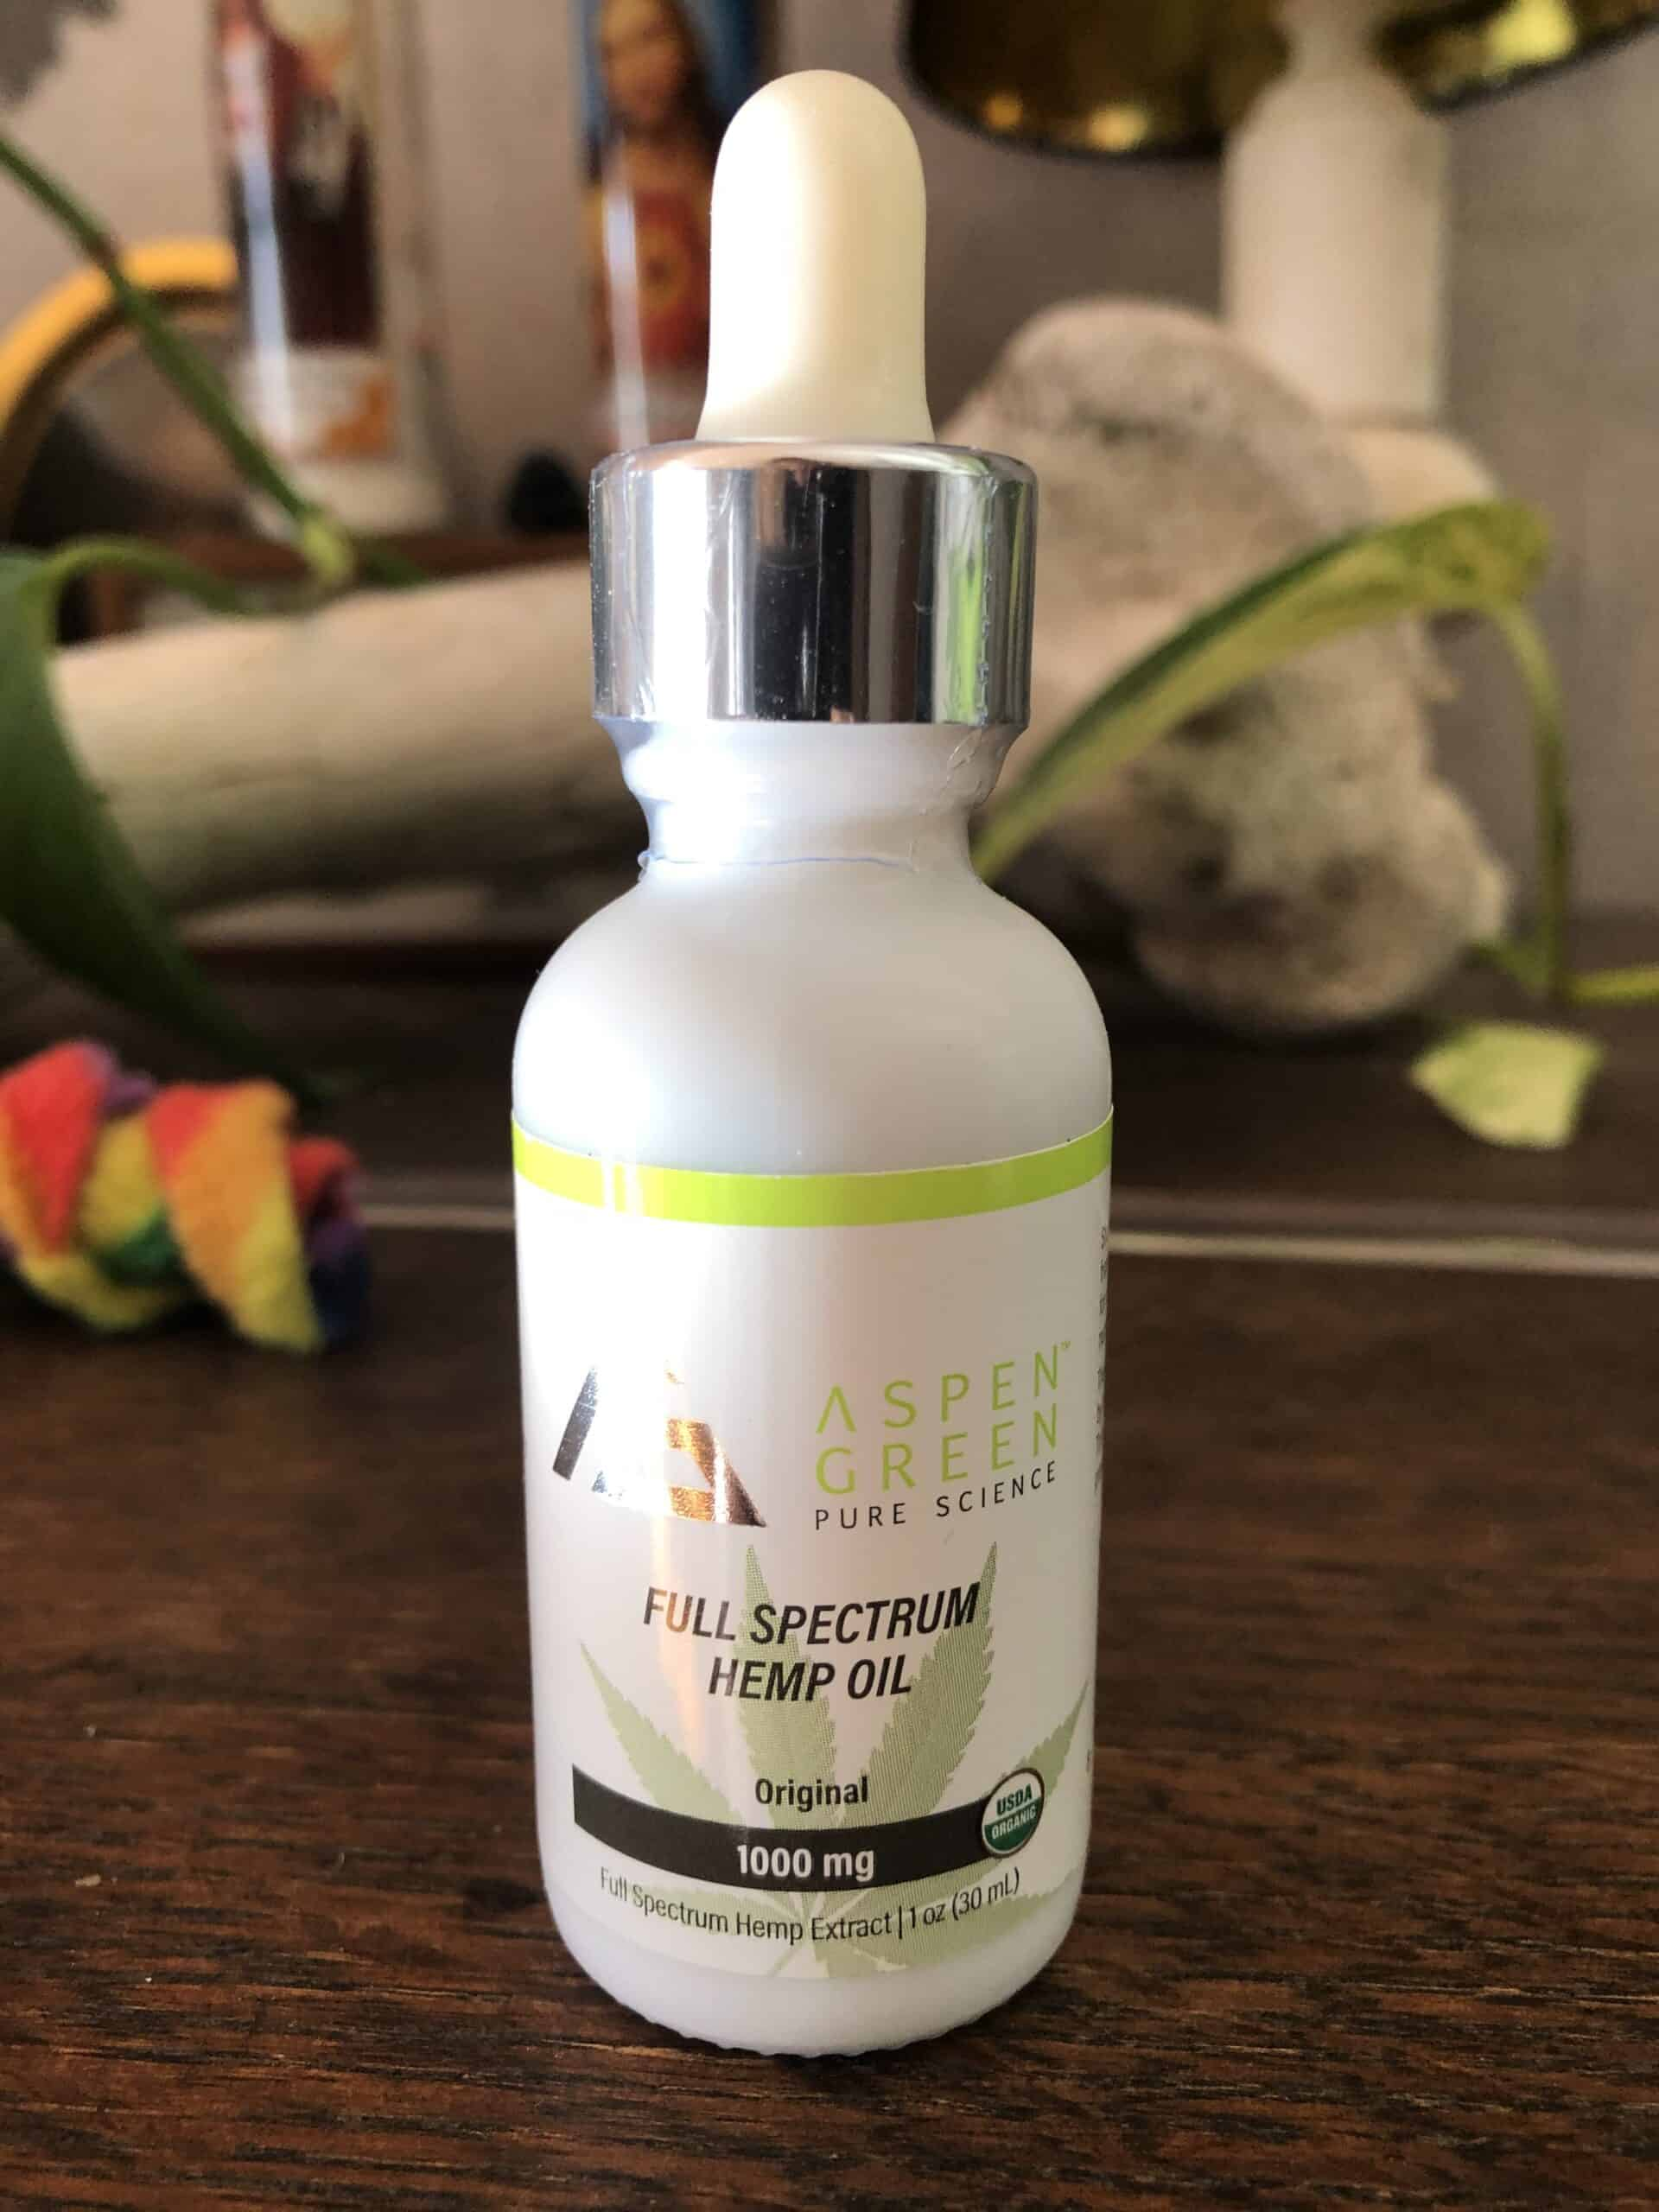 aspen green full spectrum hemp oil 1,000 mg save on cannabis beauty shot